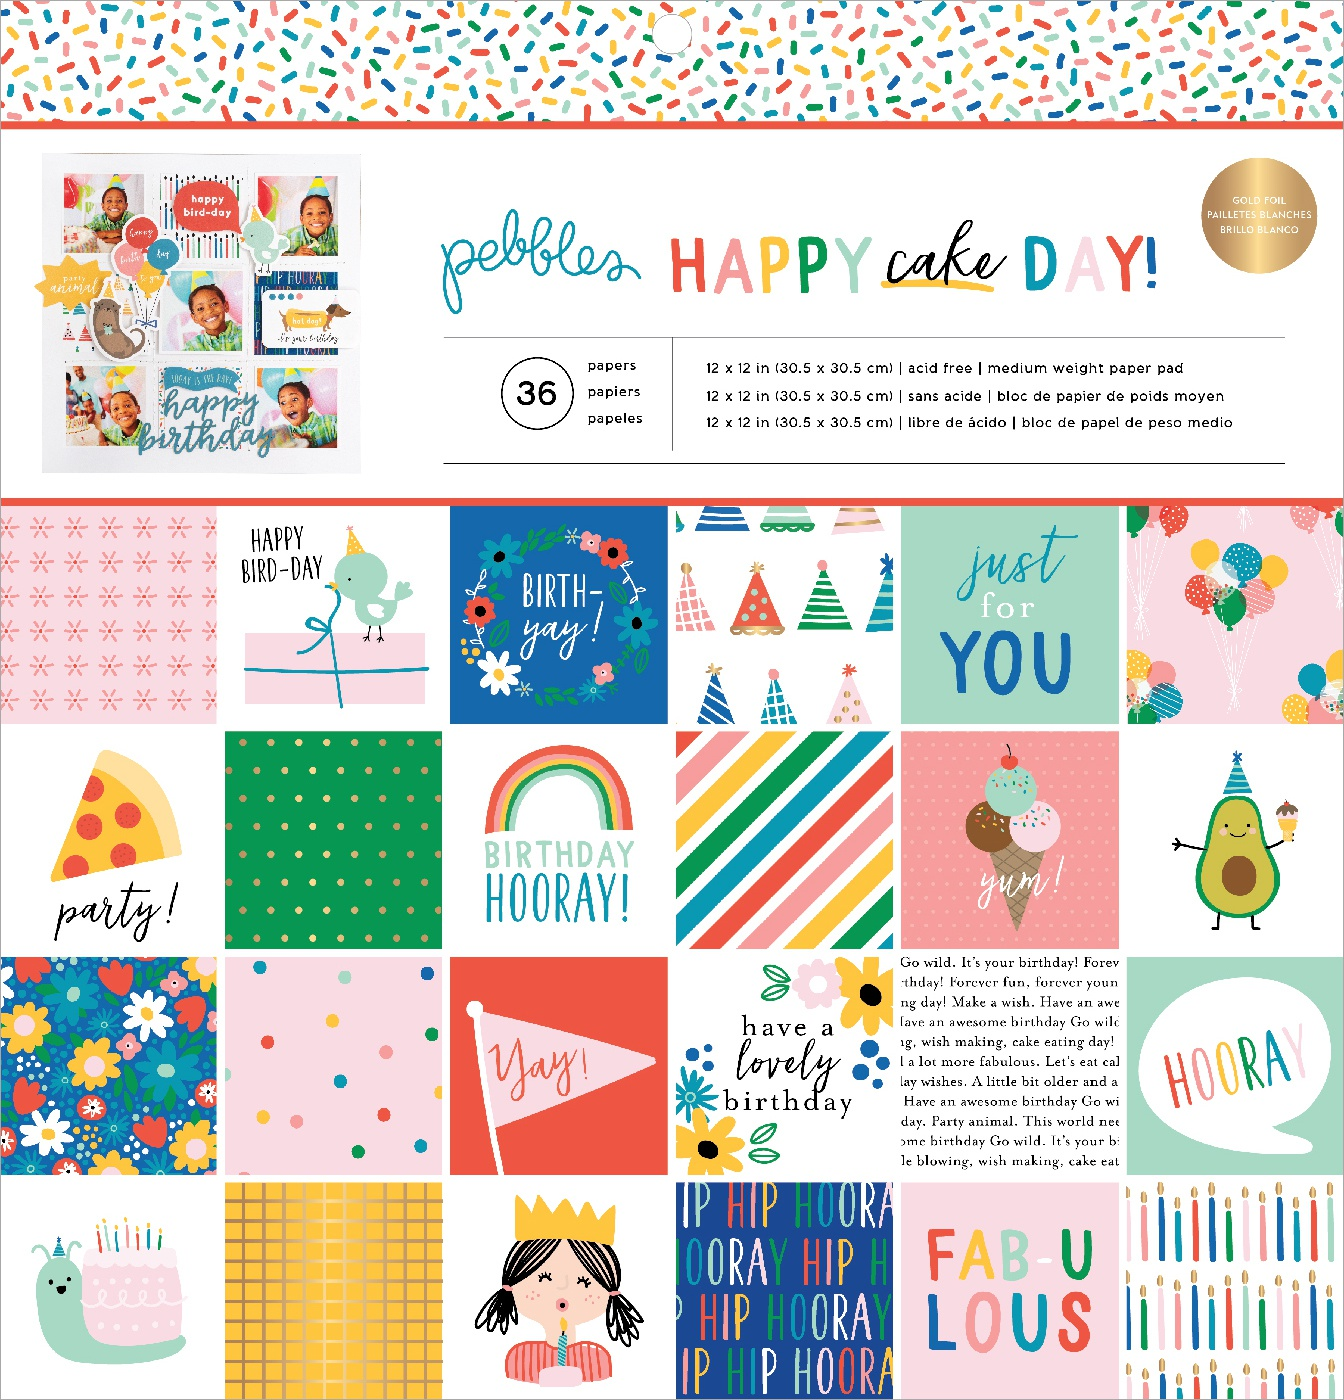 Pebbles Single-Sided Paper Pad 12X12 36/Pkg-Happy Cake Day, 12 Designs/3 Each